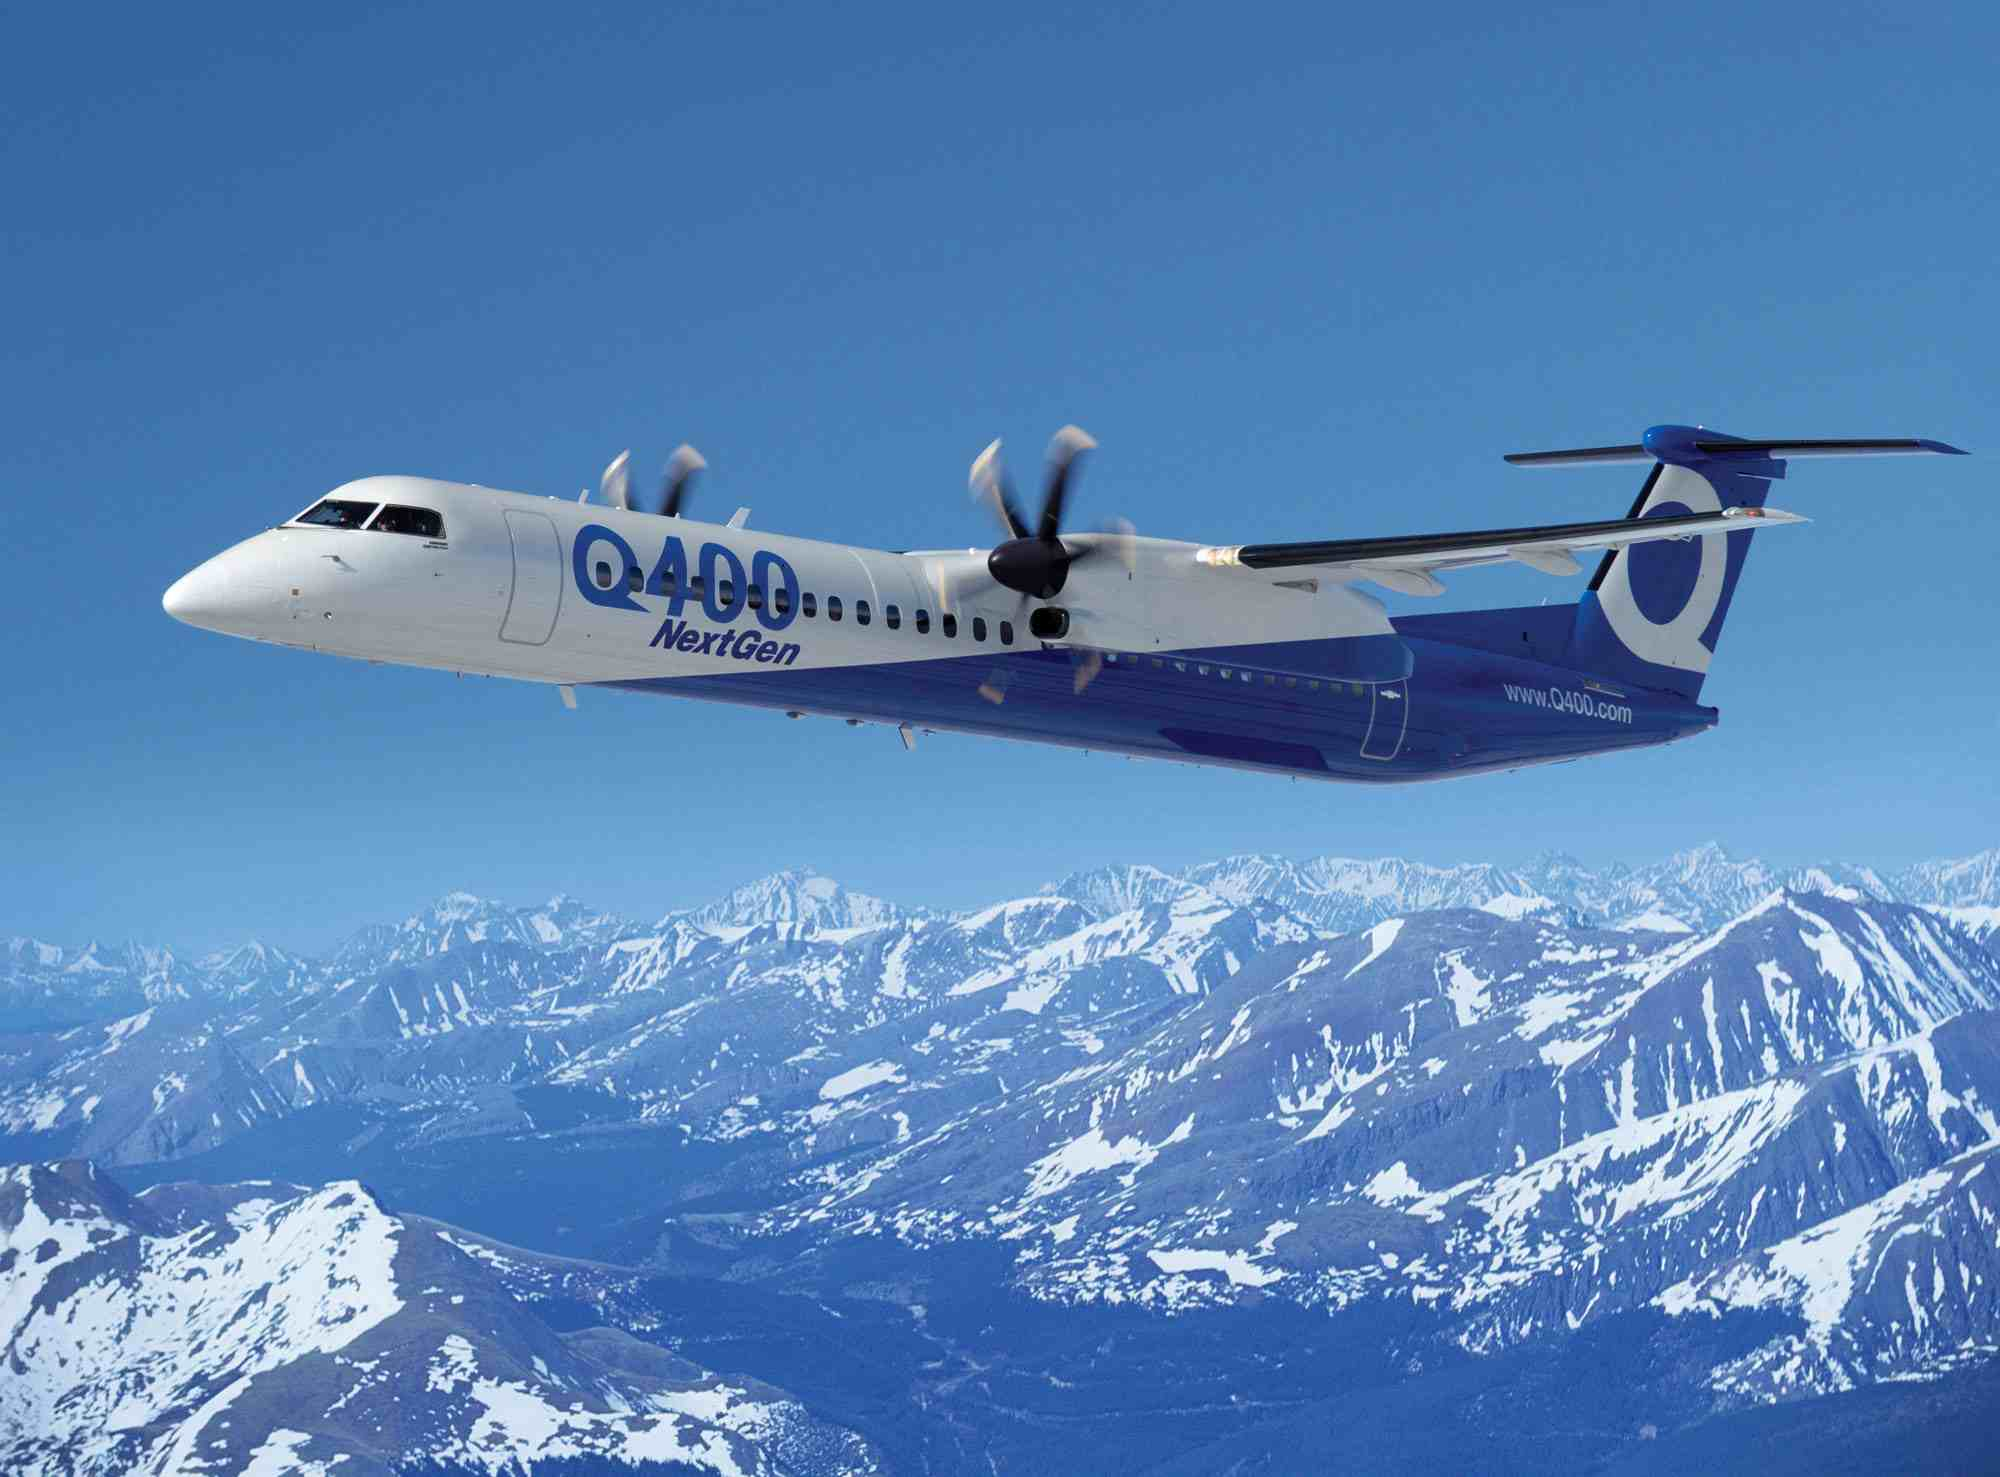 dehavilland dash 8 q400 картинки